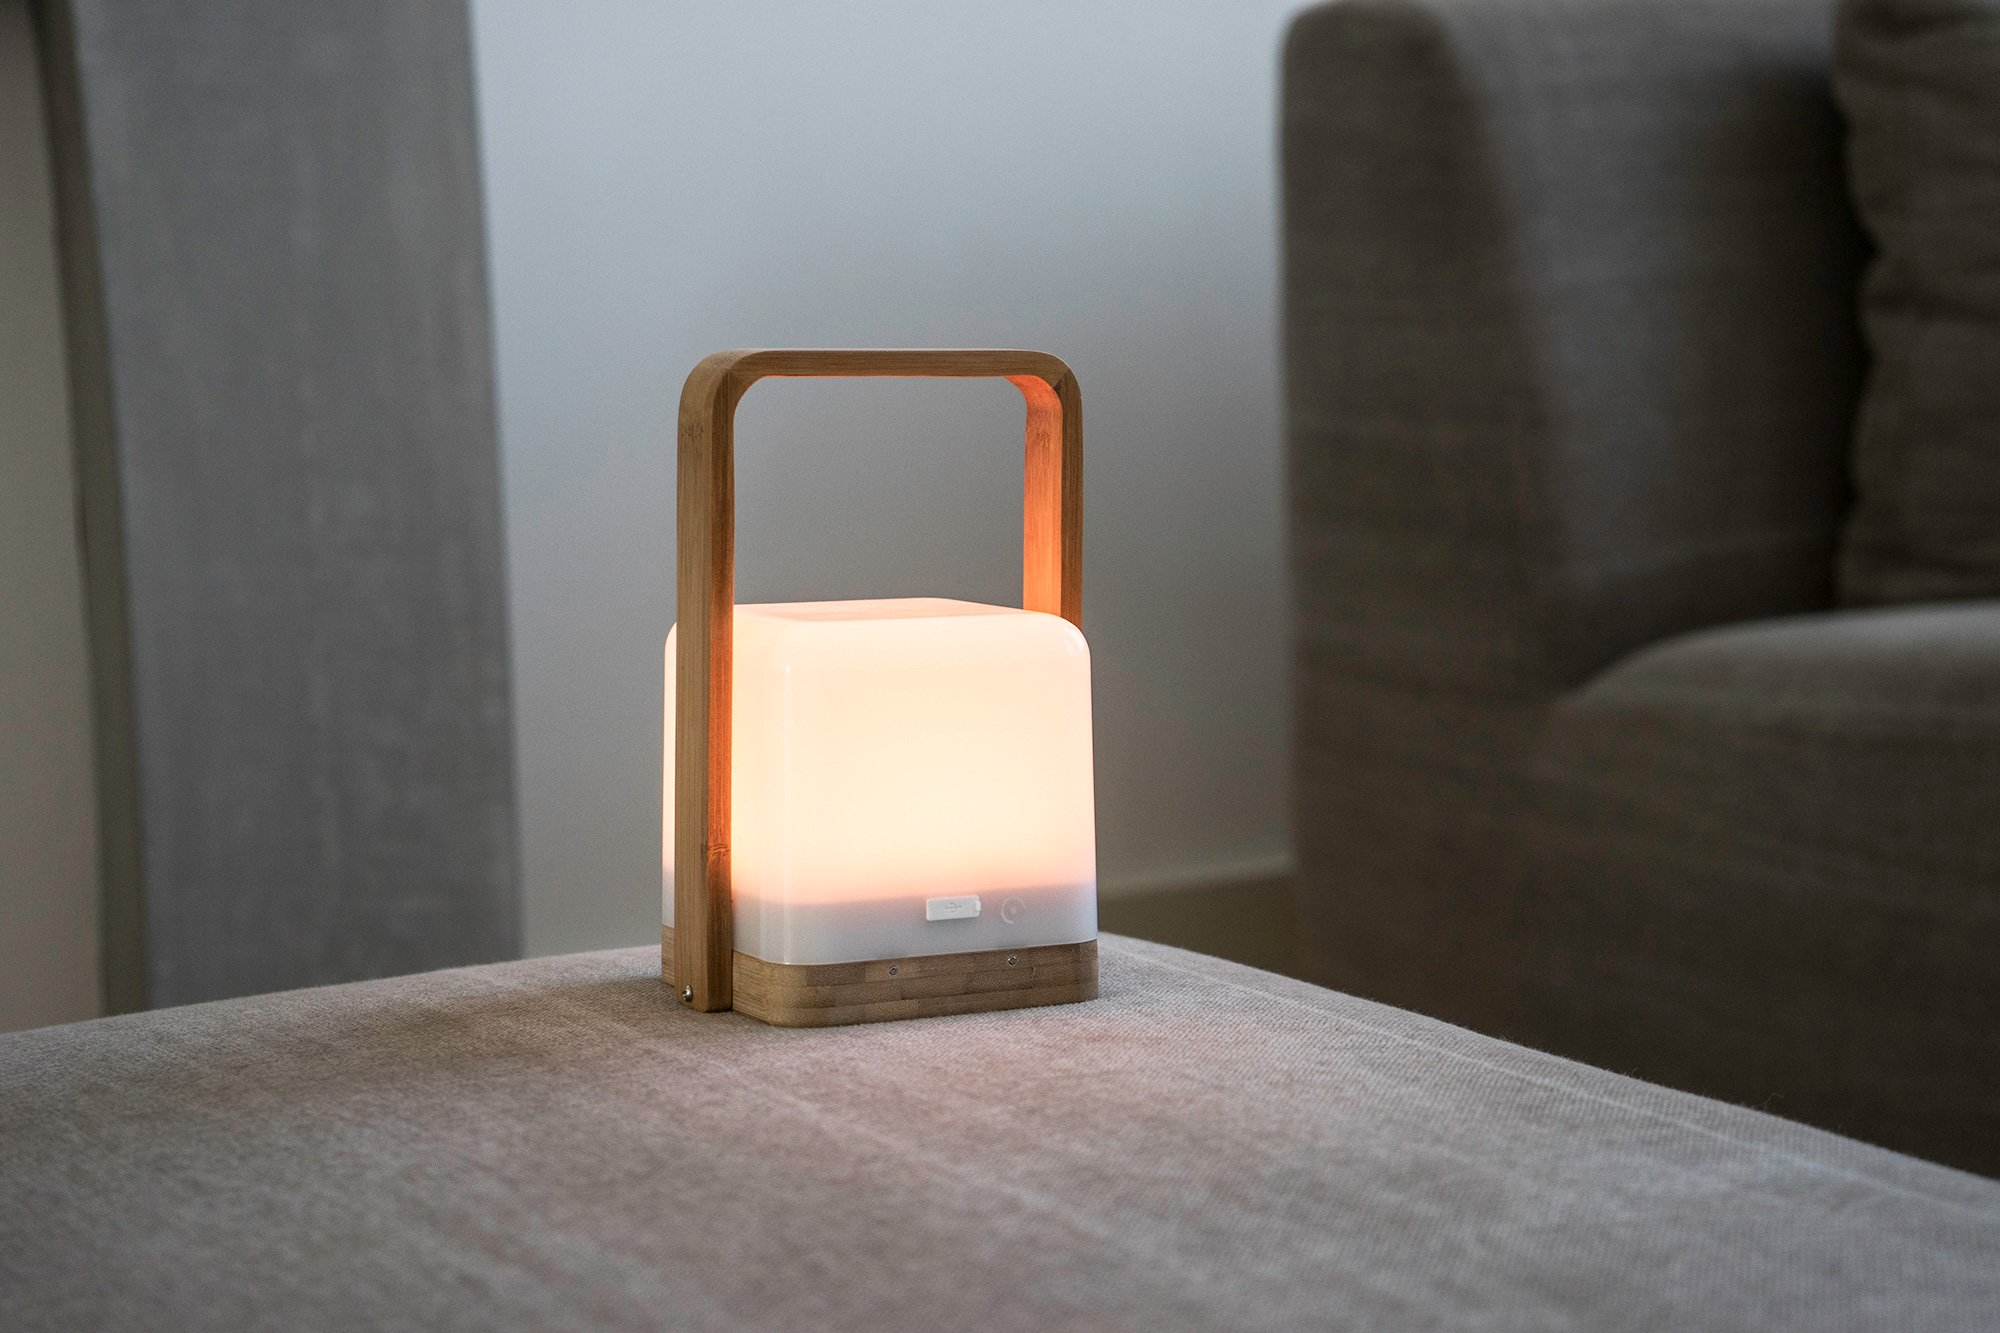 Lucis wireless lamps on The Gadget flow